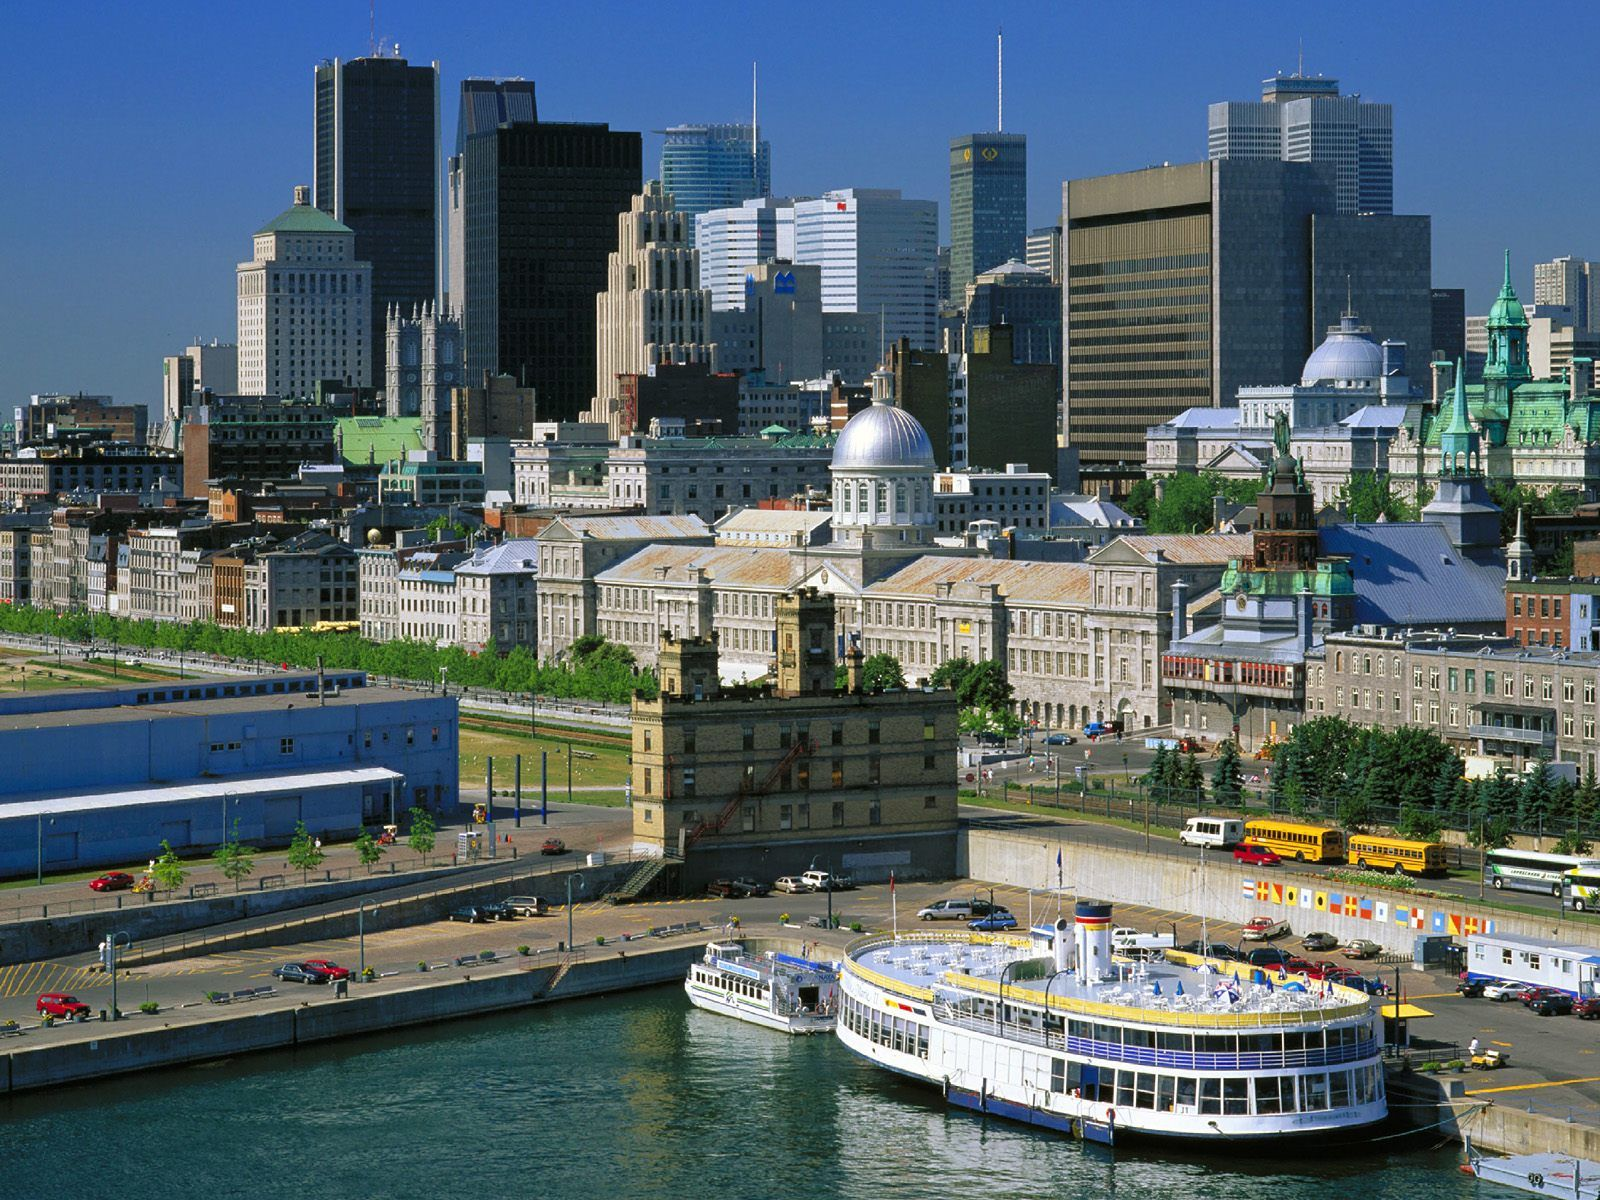 Buy essay online cheap opposed to quebec separating from canada quebec is an integral part of canada